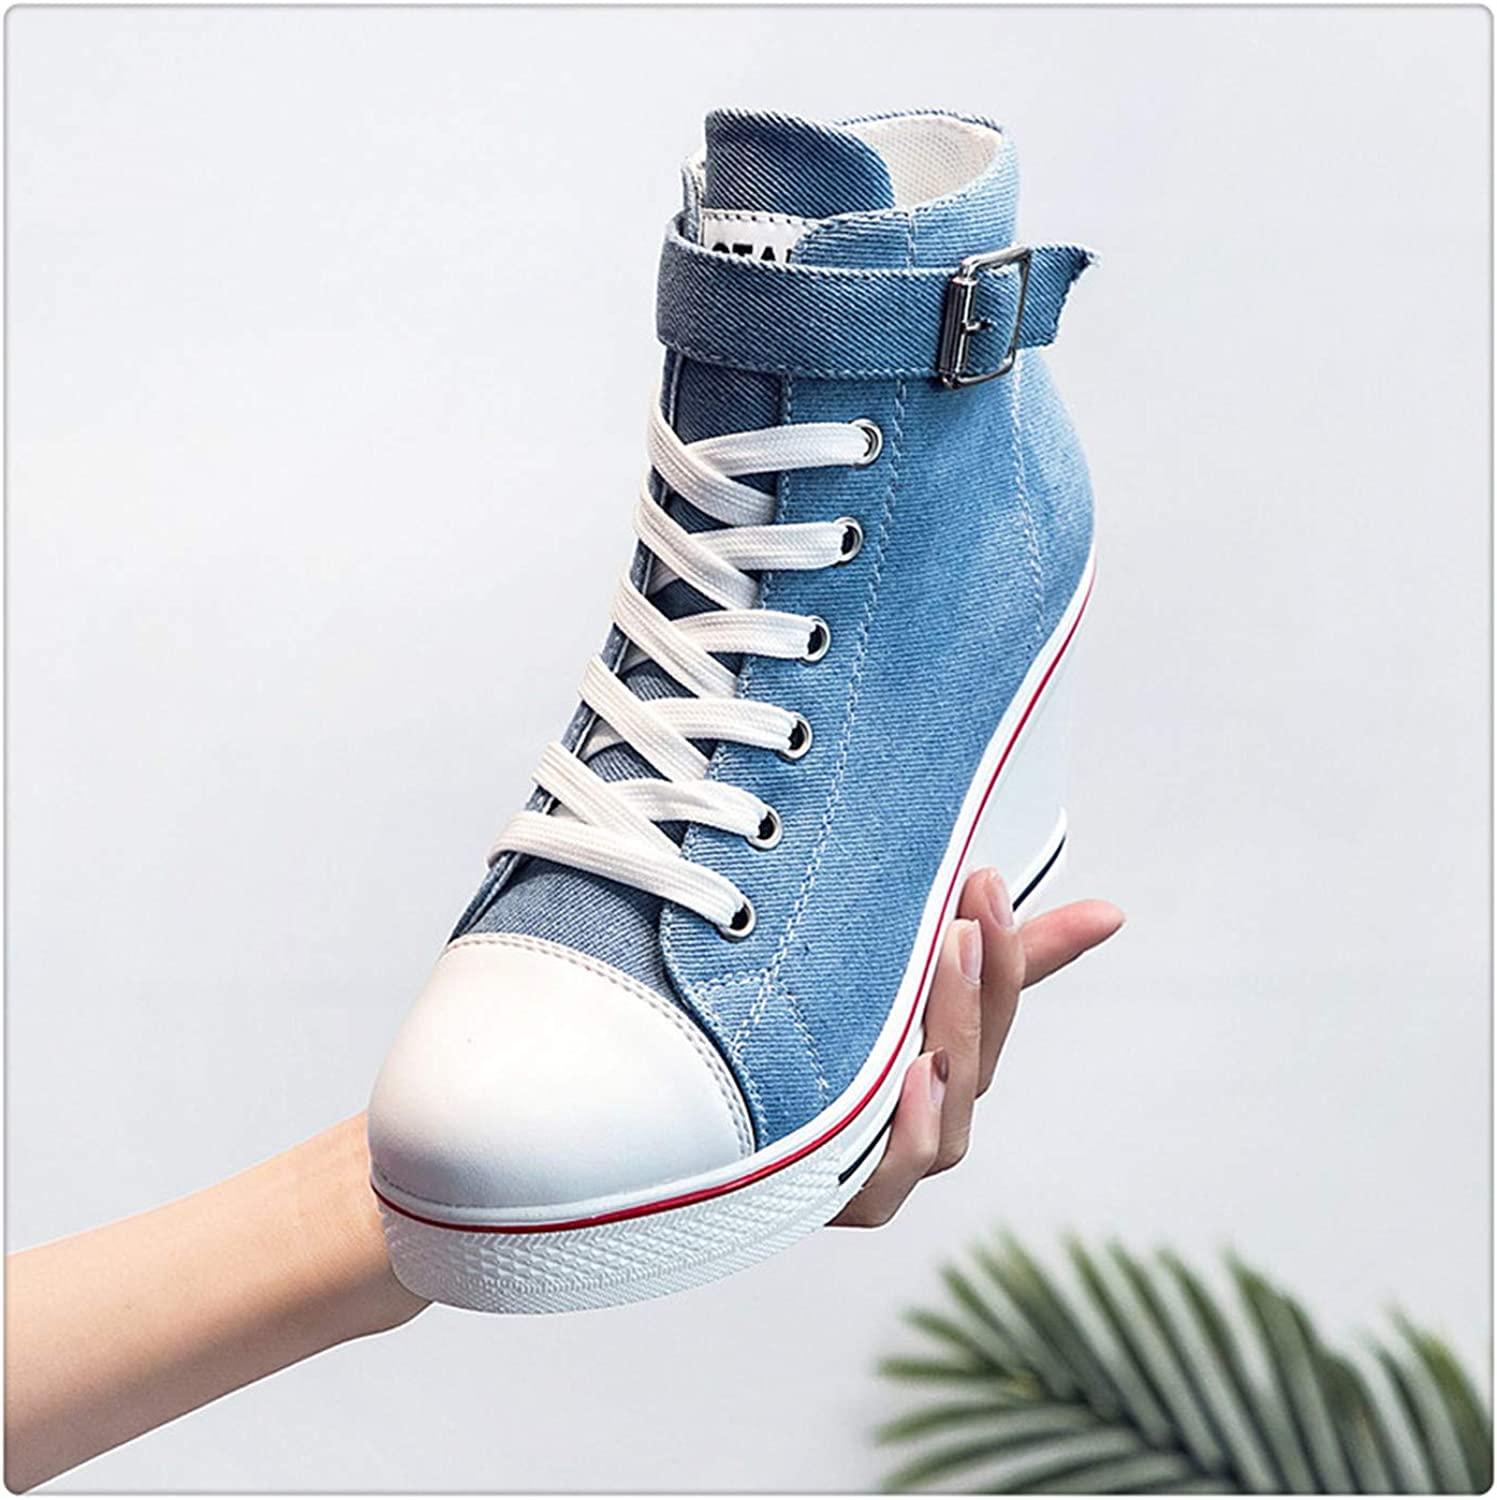 HAHUTG& Women Platform Wedge Sneakers Breathable Ladies Canvas shoes Hidden Heel Height Increase Casual shoes Woman Plus Size 41 42 43 6850 Sky bluee 8